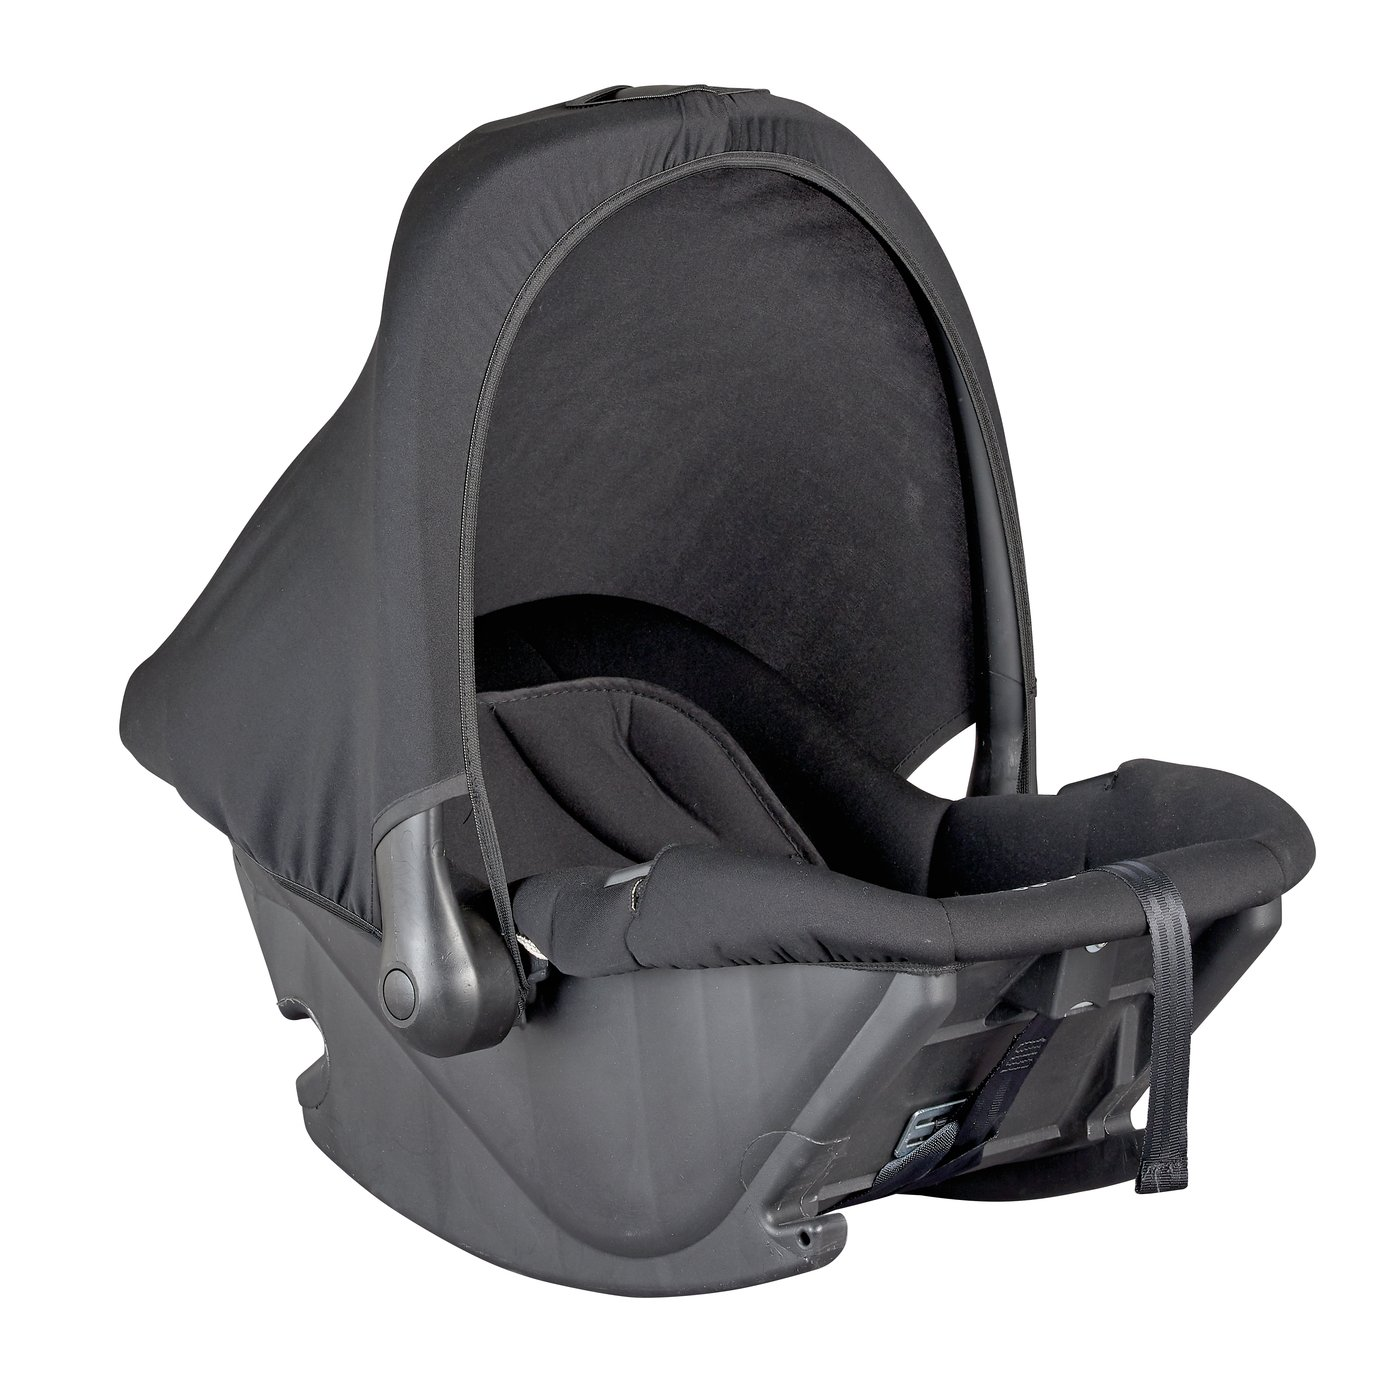 Cuggl Stork Group 0+ Infant Carrier review